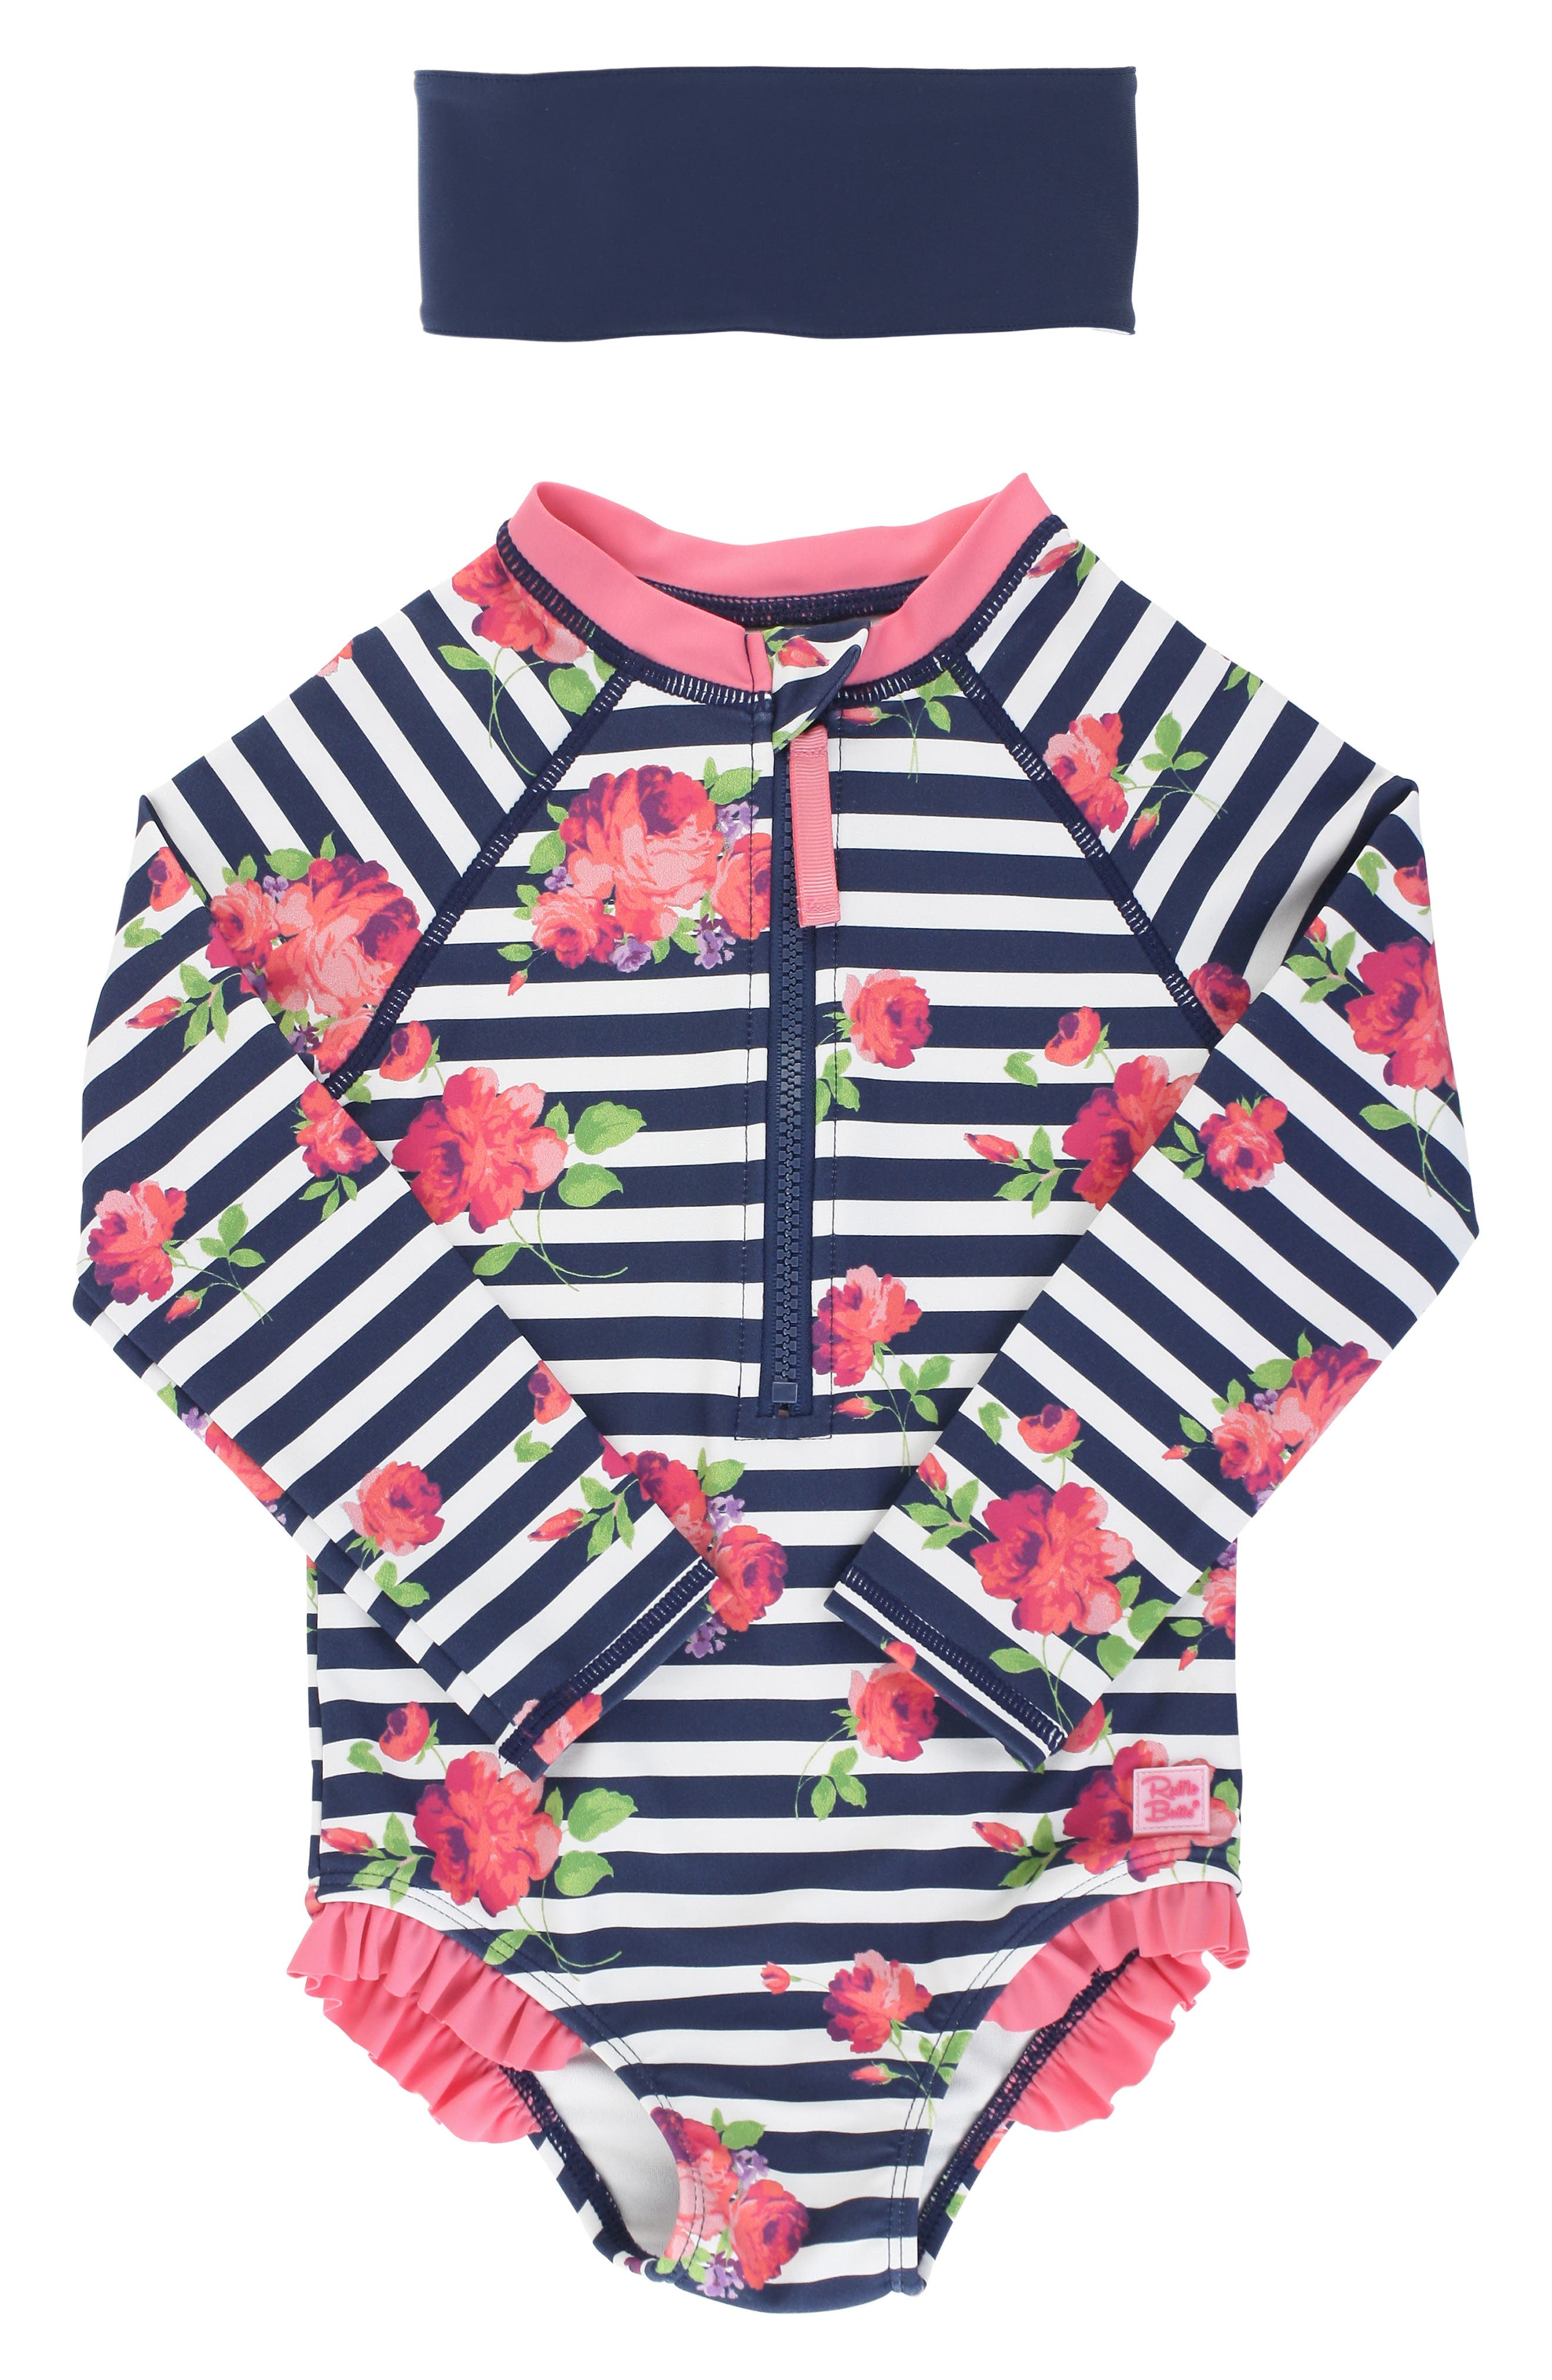 Bright flowers and crisp stripes make this long-sleeve rashguard a beach-ready fave, while the matching headband provides a perfect finishing touch. Style Name: Rufflebutts Rosy Stripe One-Piece Rashguard Swimsuit. Style Number: 6000251. Available in stores.